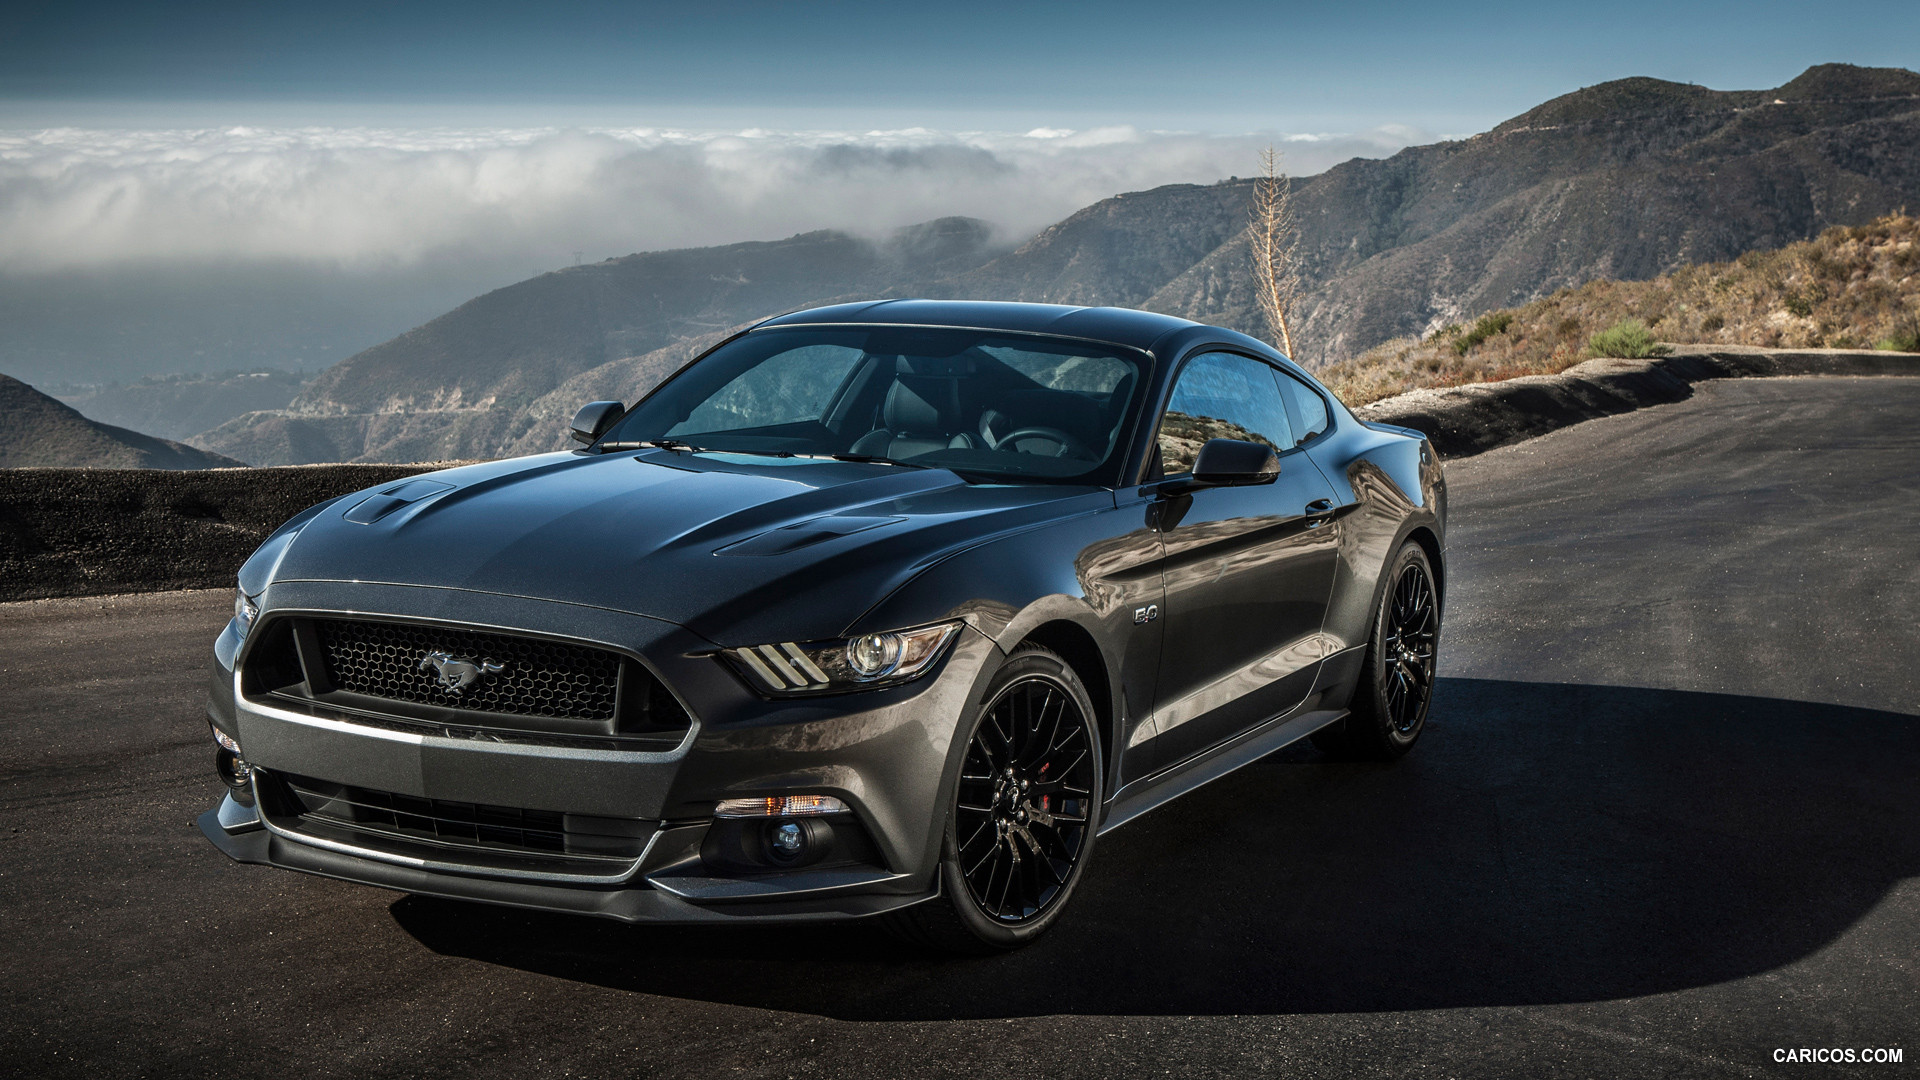 1920x1080 - Ford Mustang GT Wallpapers 2